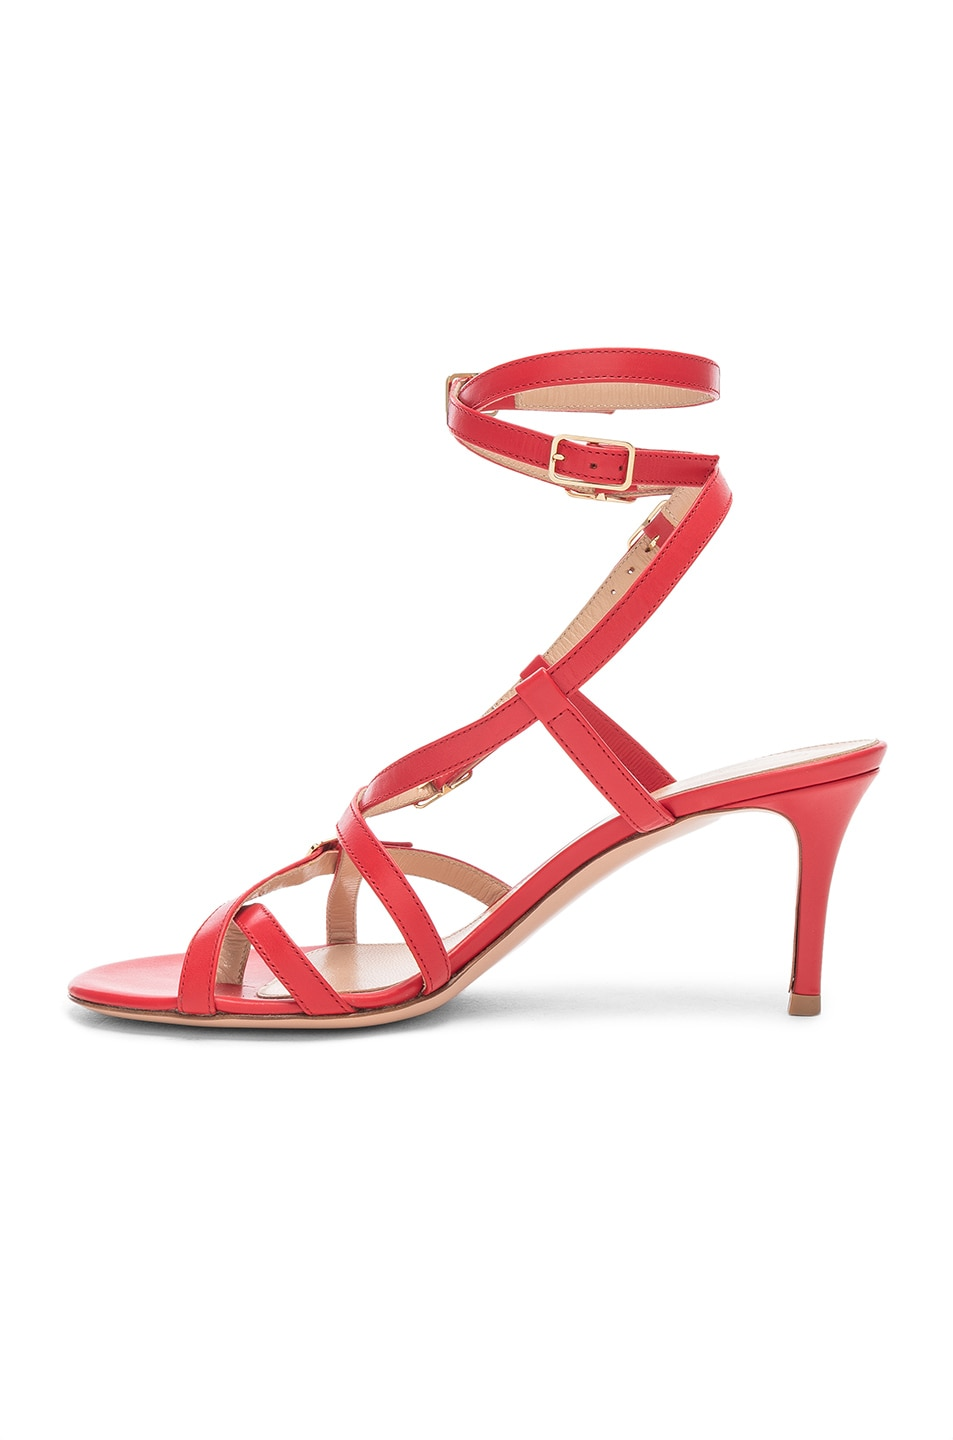 Image 5 of Gianvito Rossi Cory Buckle Strappy Heel in Tabasco Red